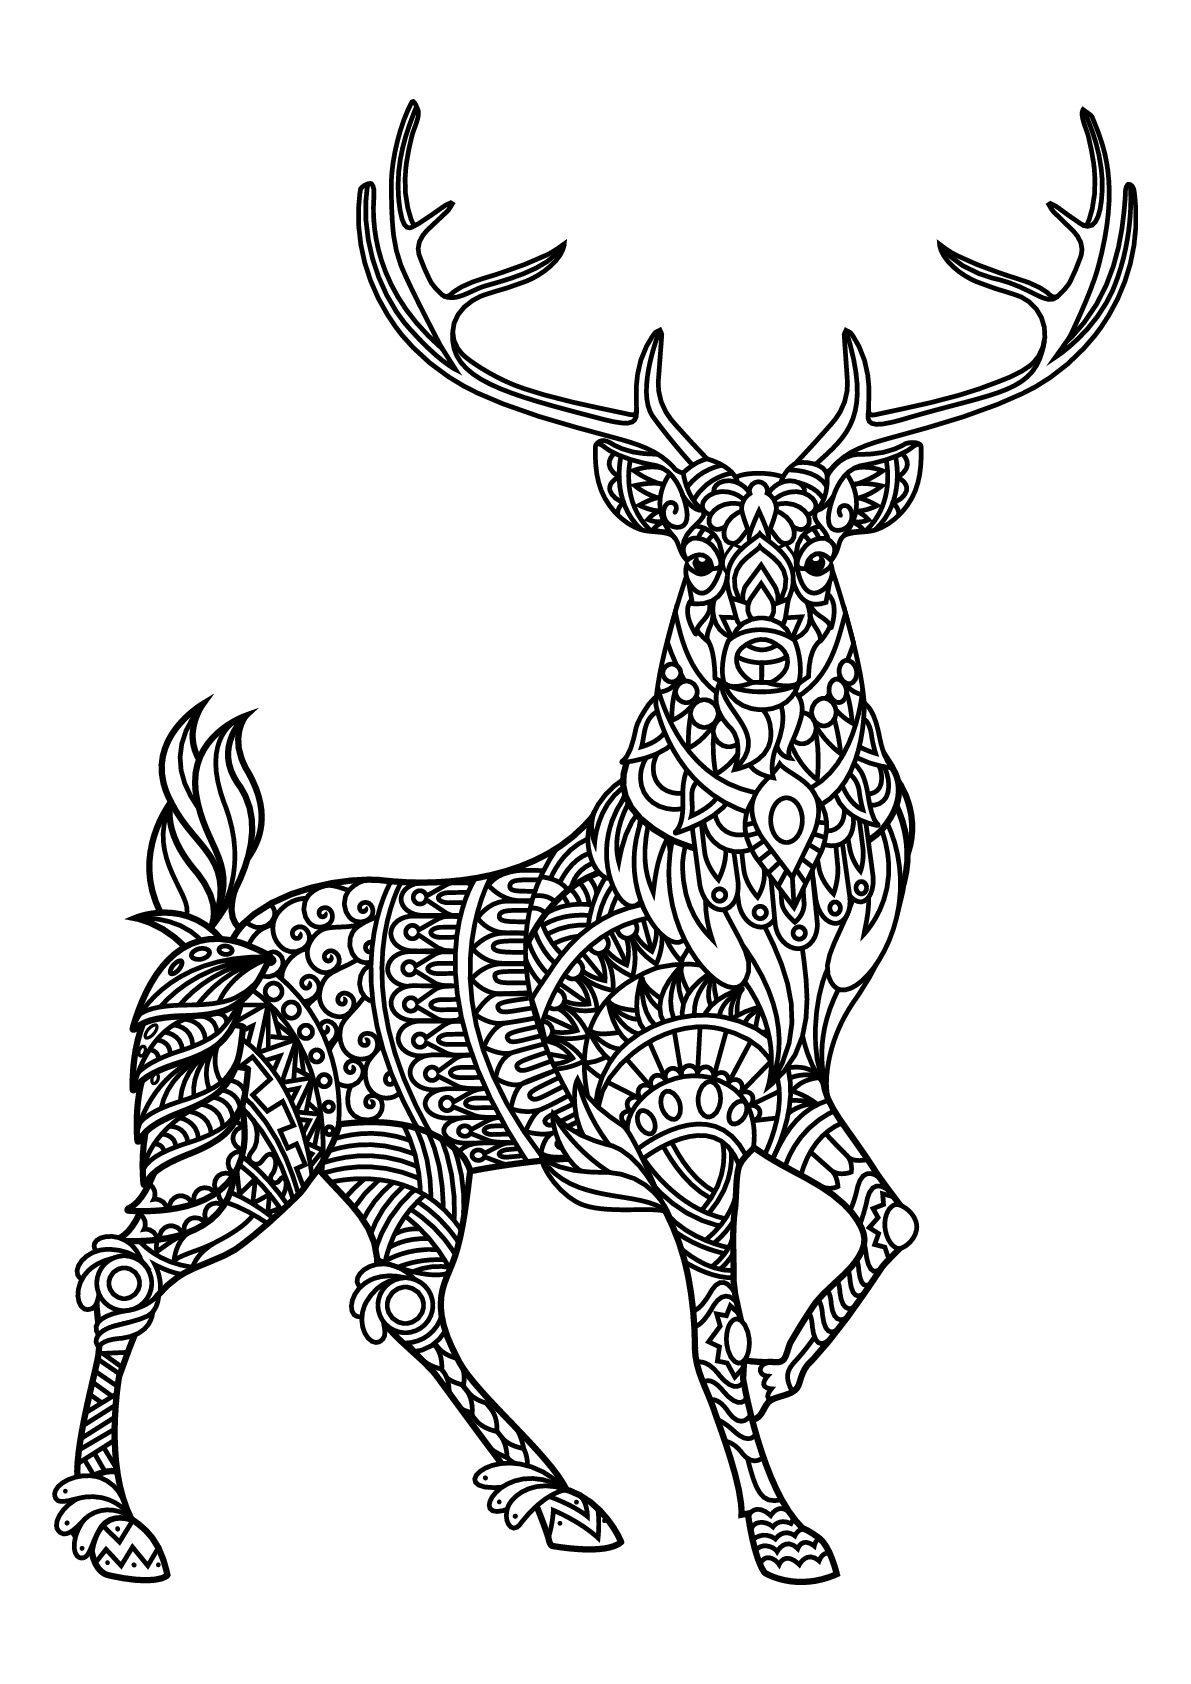 Reindeer Coloring Pages Deer Coloring Pages Mandala Coloring